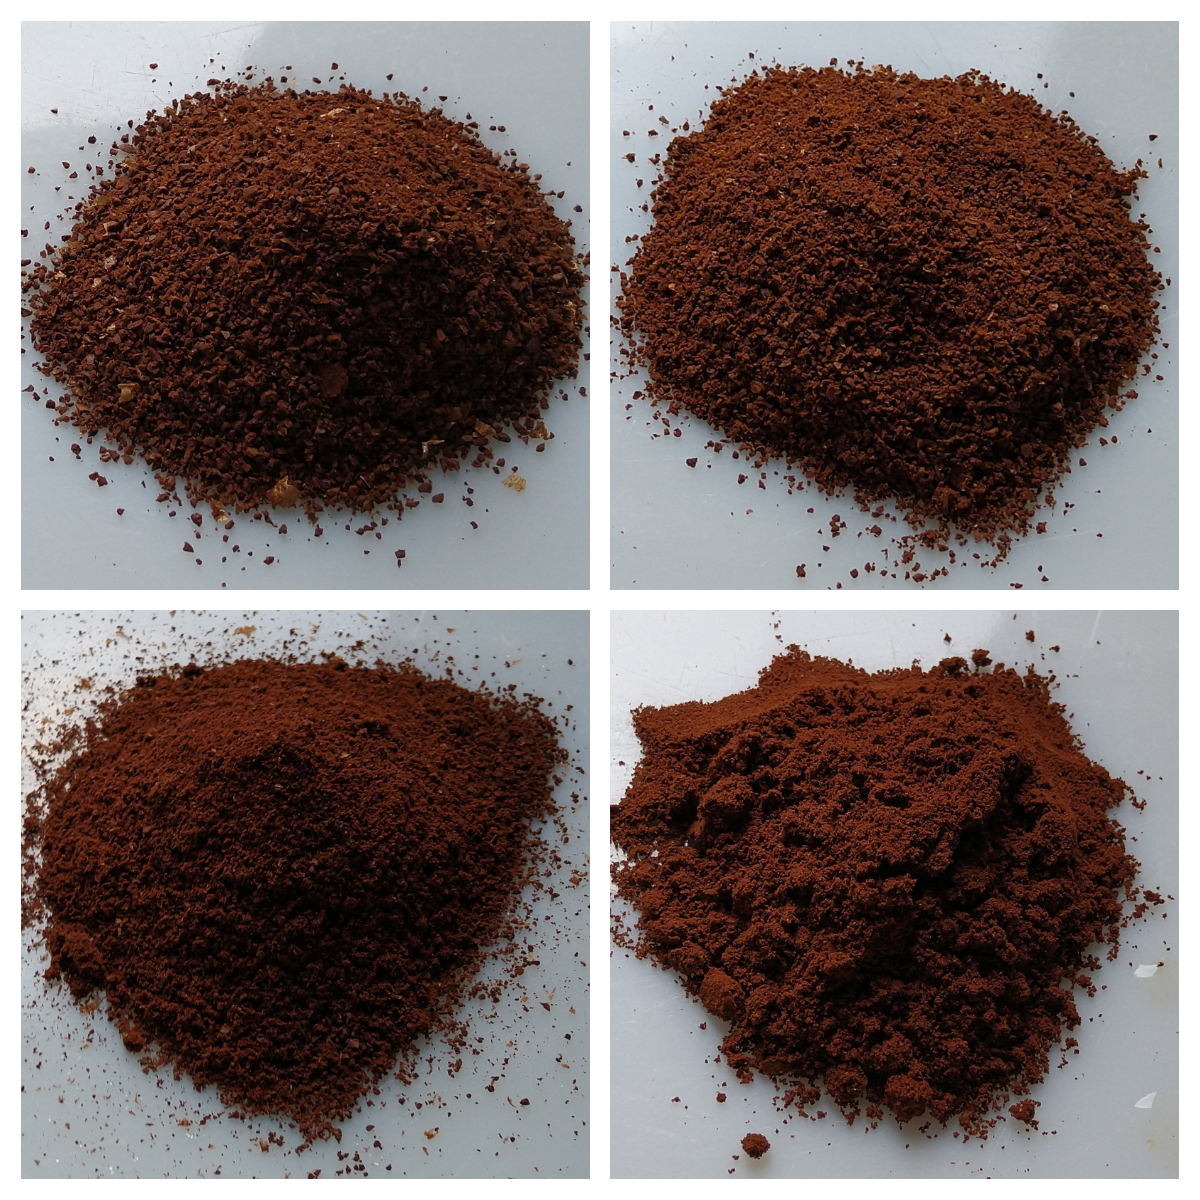 A comparison of different grind sizes from coarse (top left) to very fine (bottom right). The first three are ground with my feldgrind hand grinder: cafetiere (top left), V60 (top right), Aeropress (bottom left), while the fourth (bottom right) is my espresso grinder, ground for espresso in my Sage Barista Express.